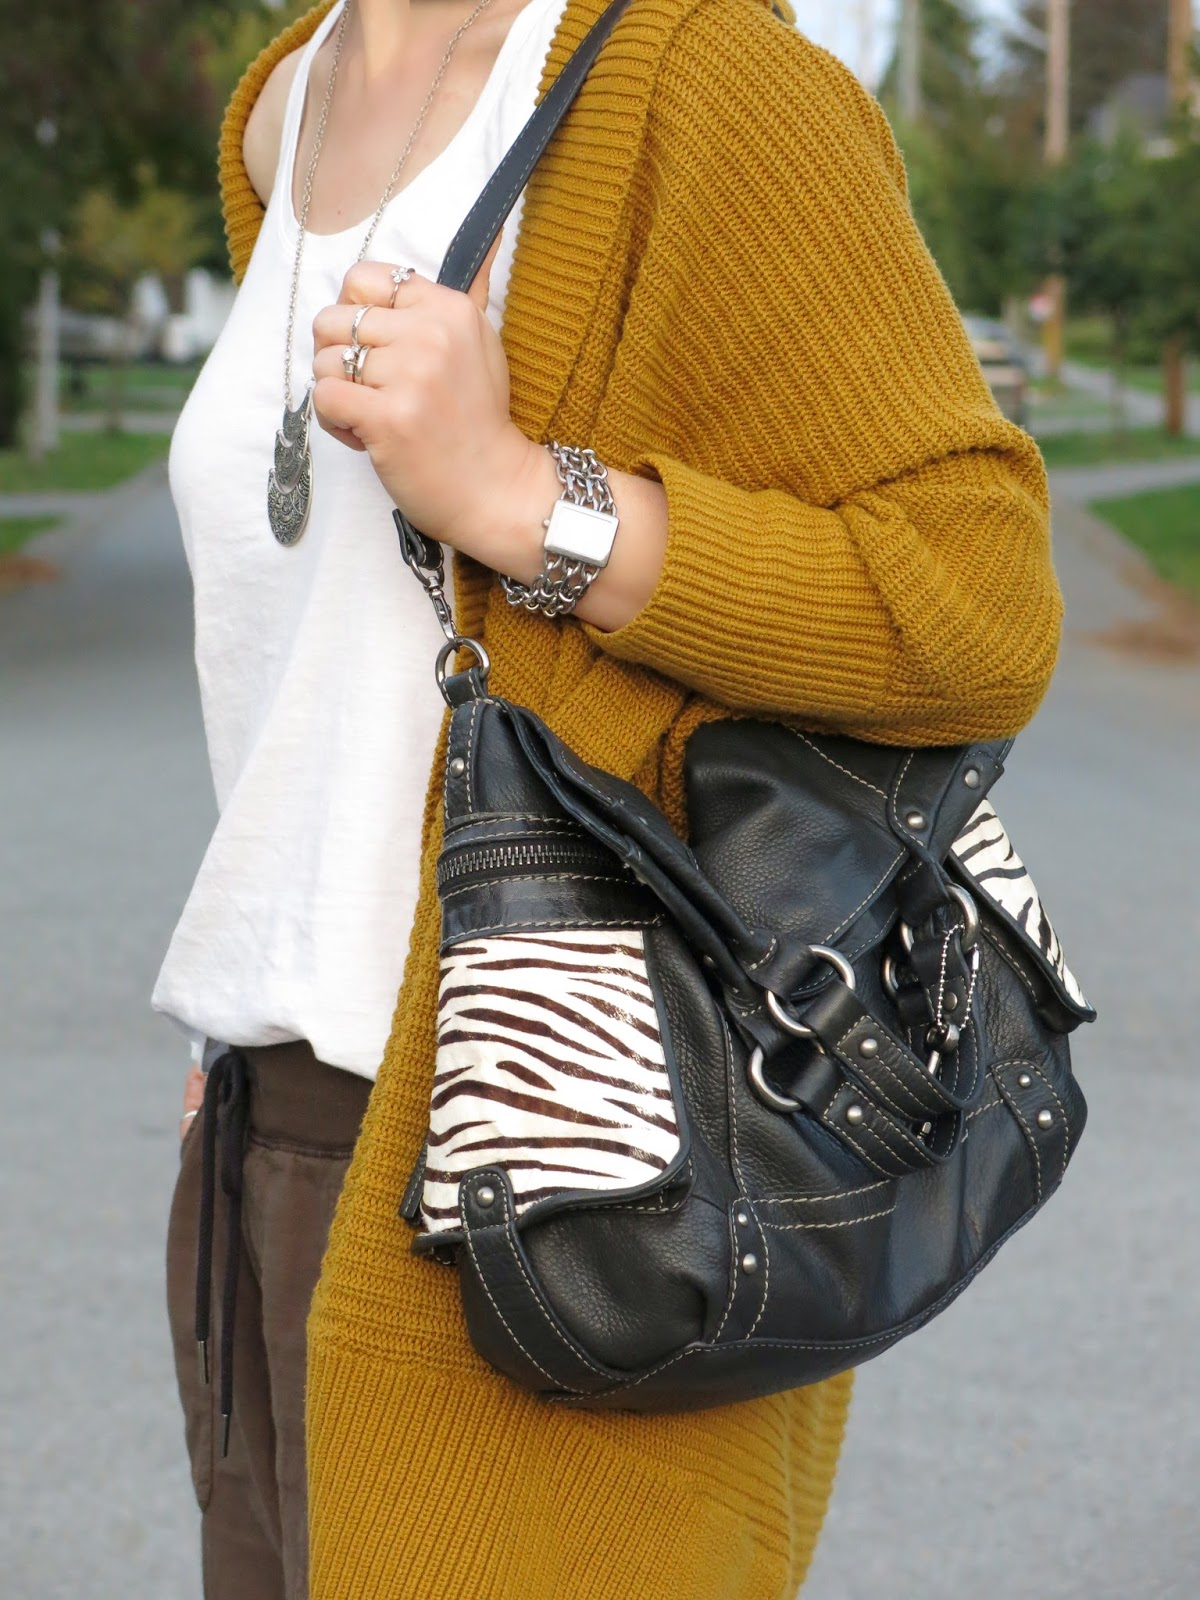 drapey mustard-yellow cardigan, white tank, and zebra-striped Fossil bag